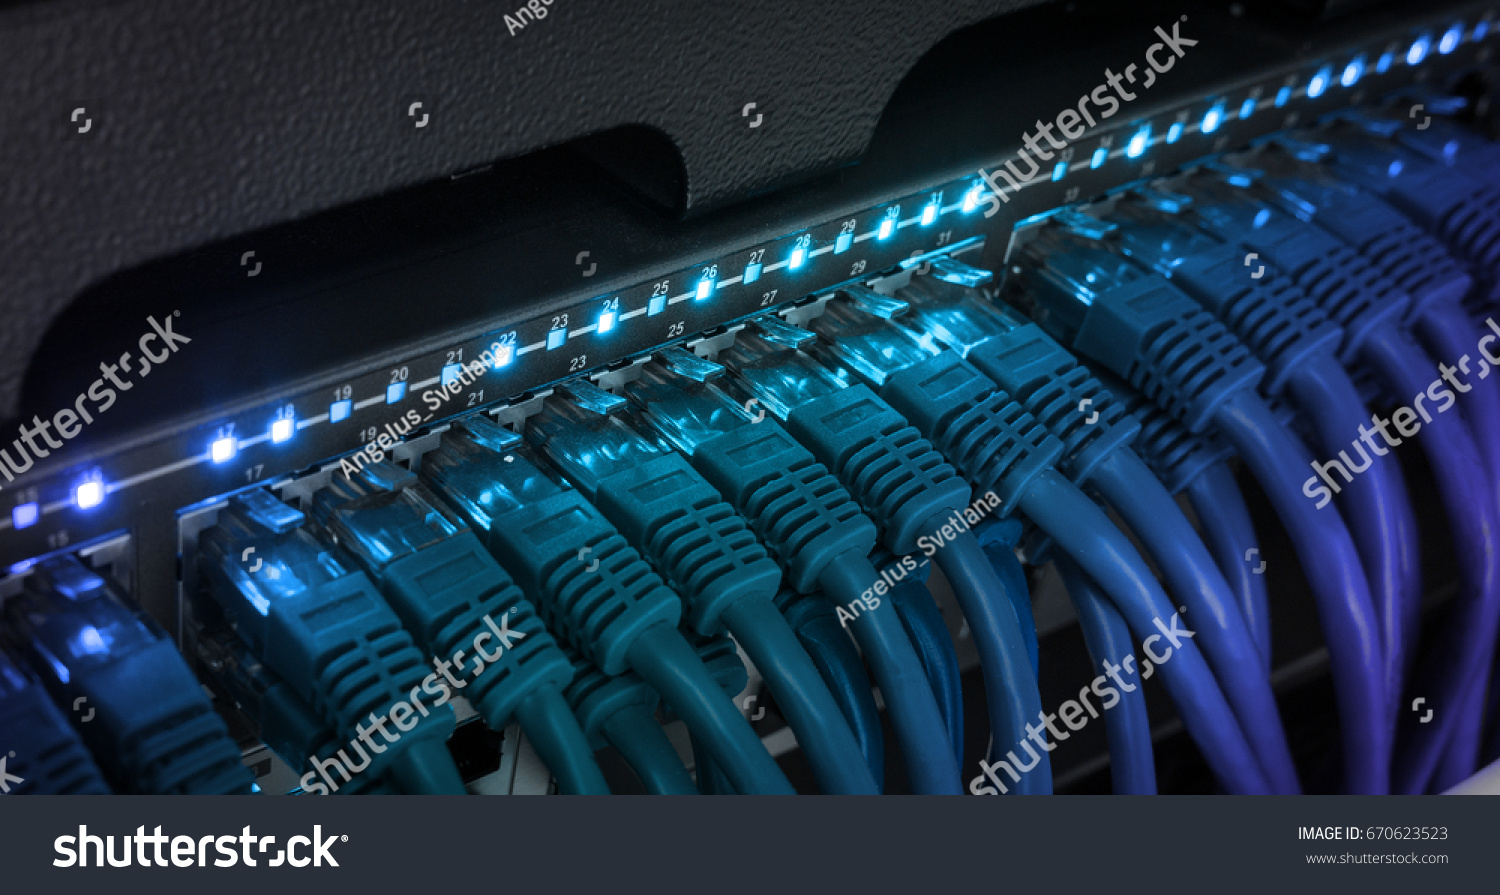 Network server panel, switch and patch cord cable in data center glowing in the dark. Blue led #670623523